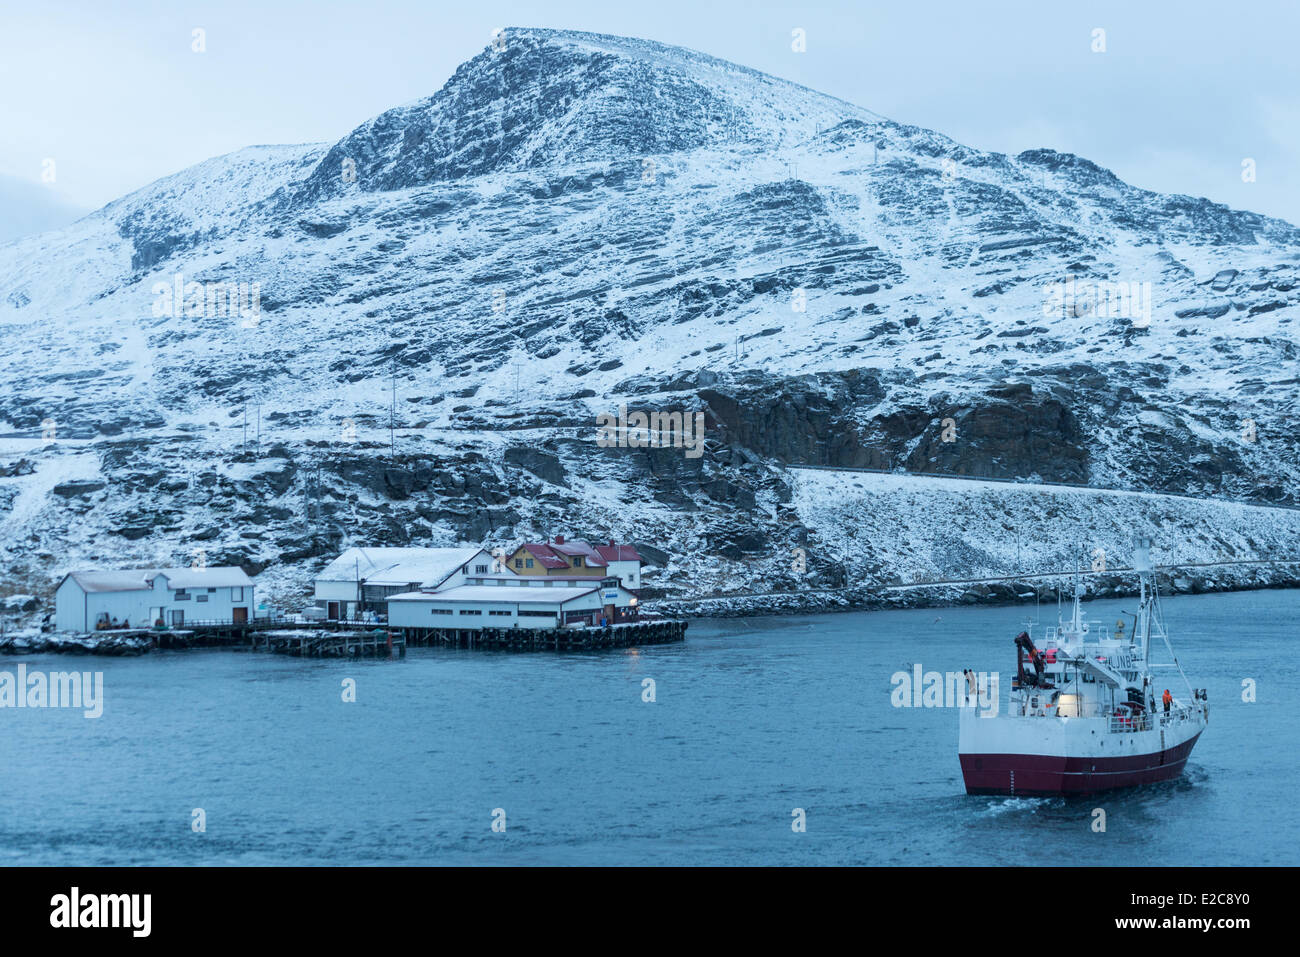 Norway, Finnmark, Havoysund, fisher boat arriving in the harbour - Stock Image